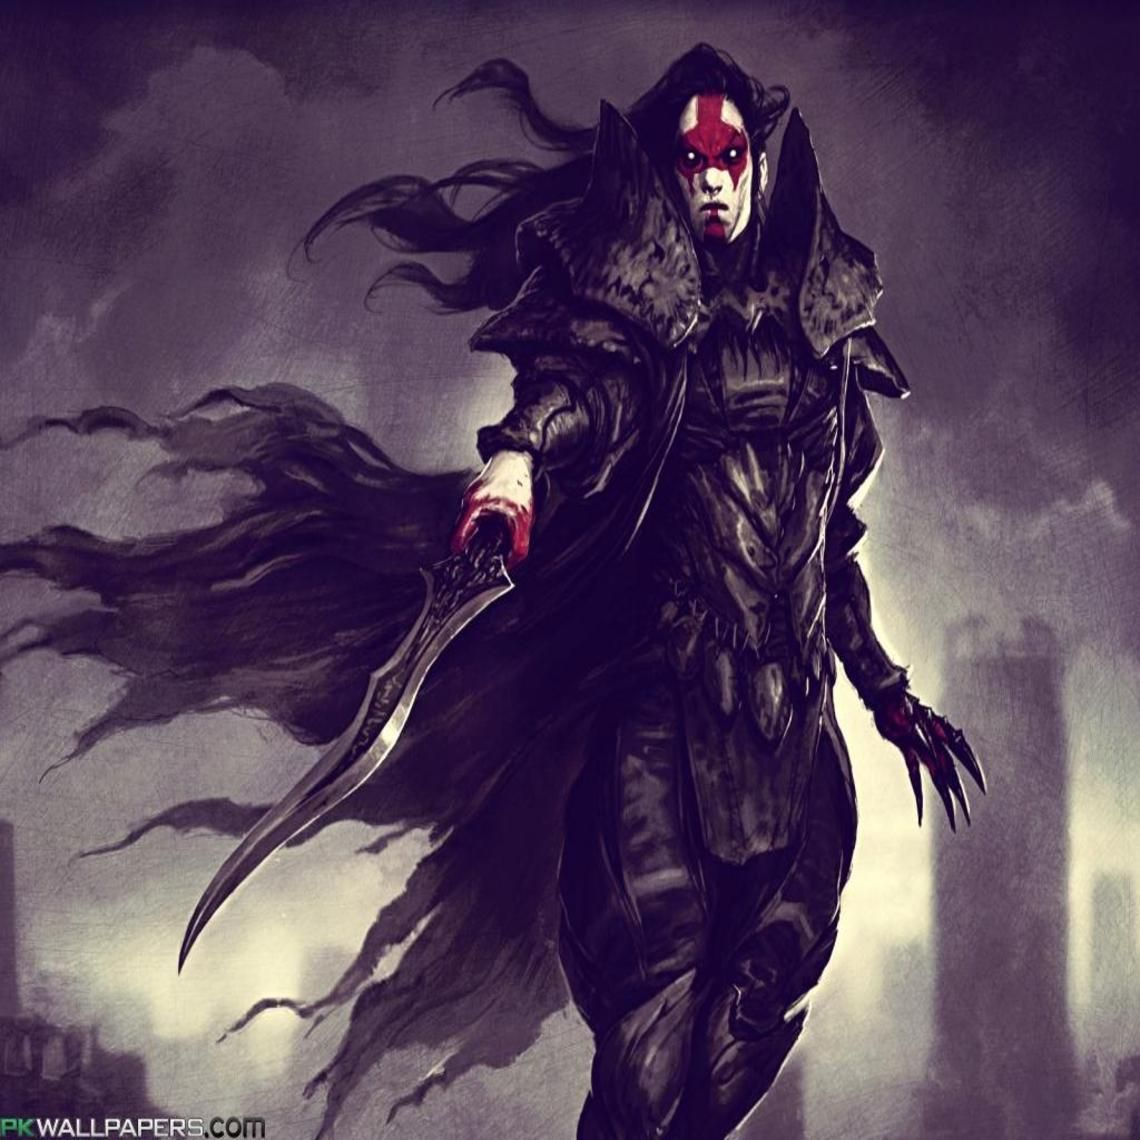 Vampire Warrior Hd Anime Wallpapers Android Wallpaper Anime Anime Hd Anime vampire wallpapers for android